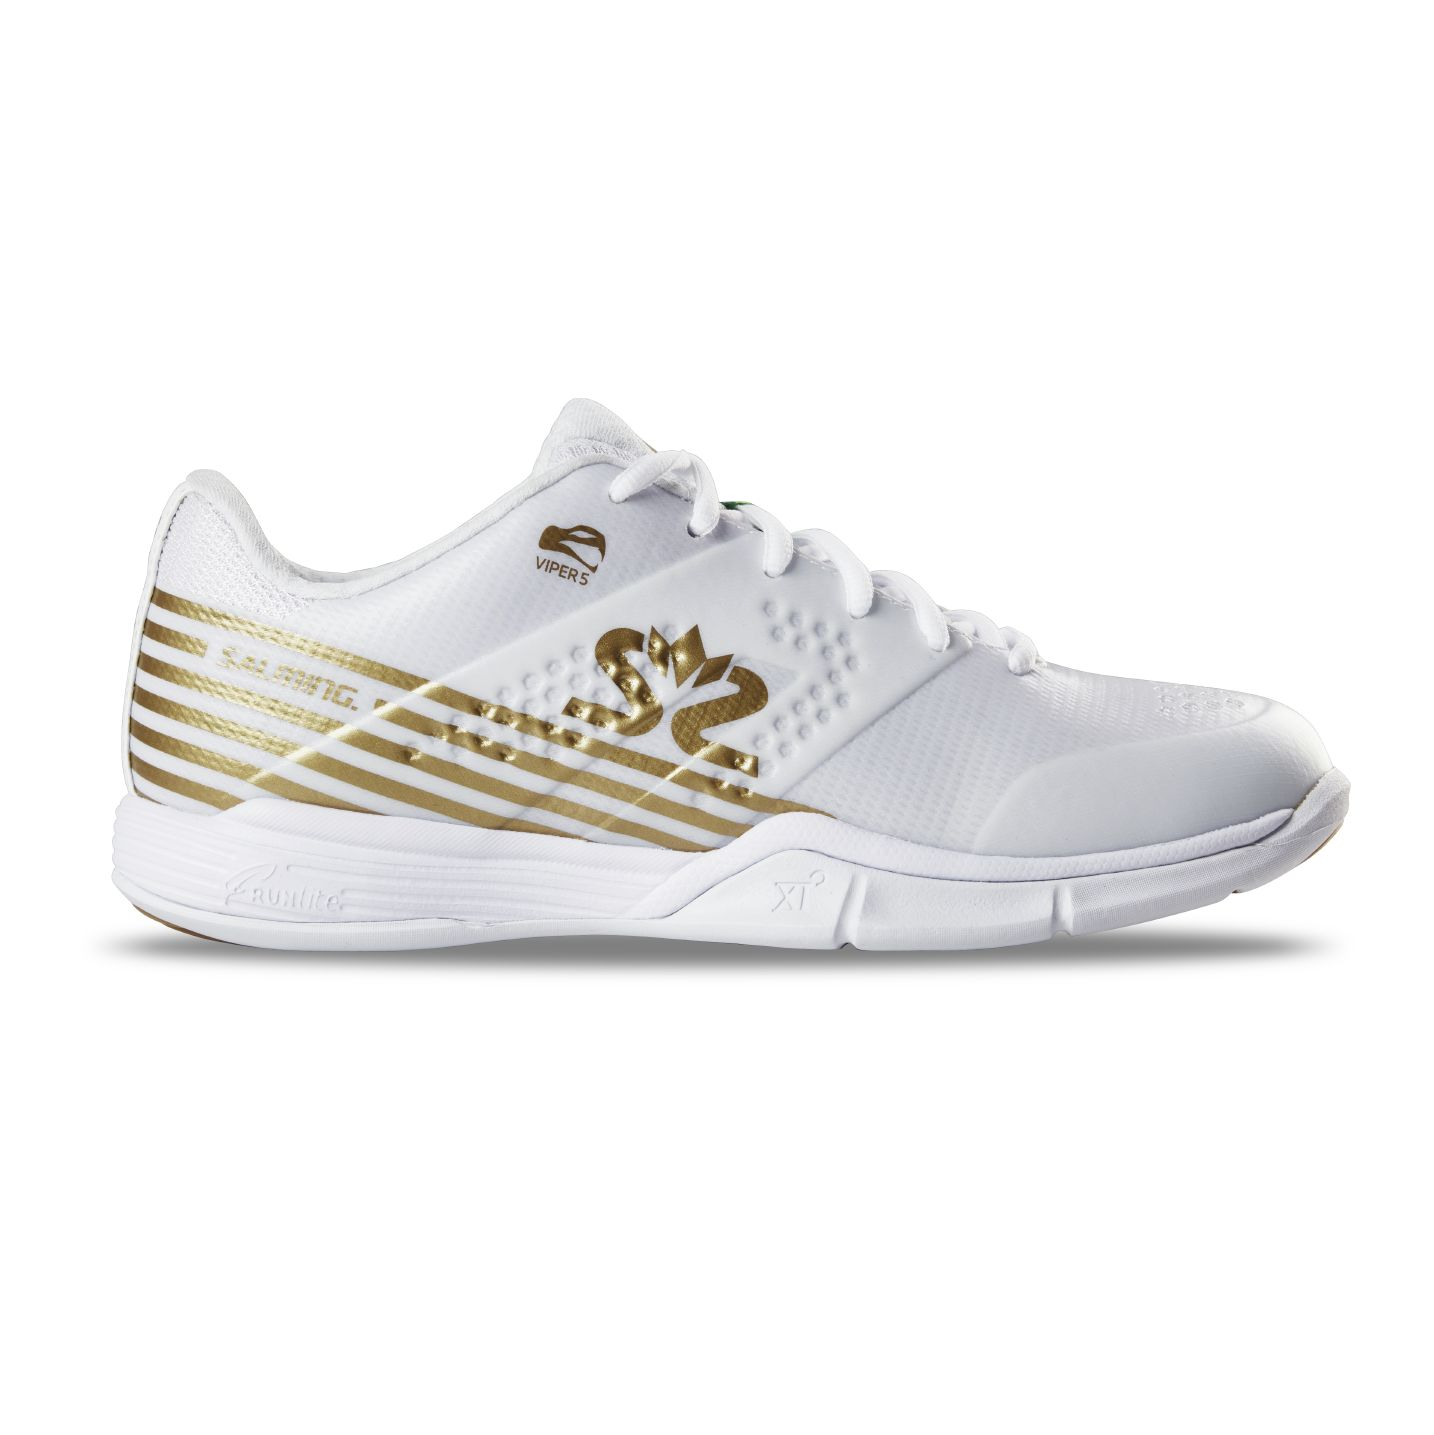 Salming Viper 5 Shoe Women White/Gold 6,5 UK - 40 EUR - 25,5 cm